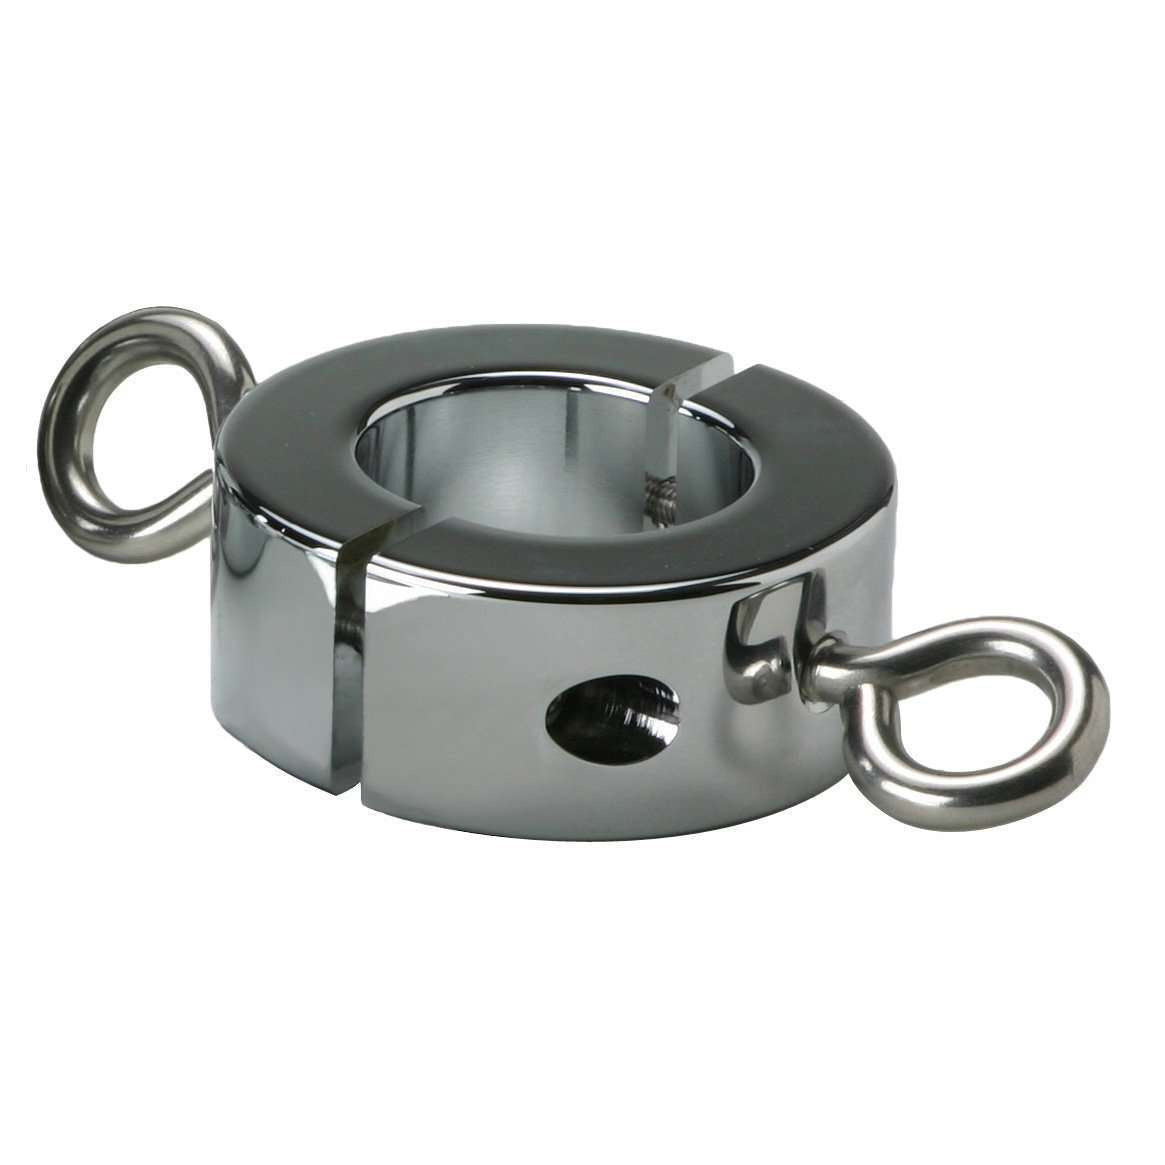 Ball Stretcher Weight for CBT- Medium